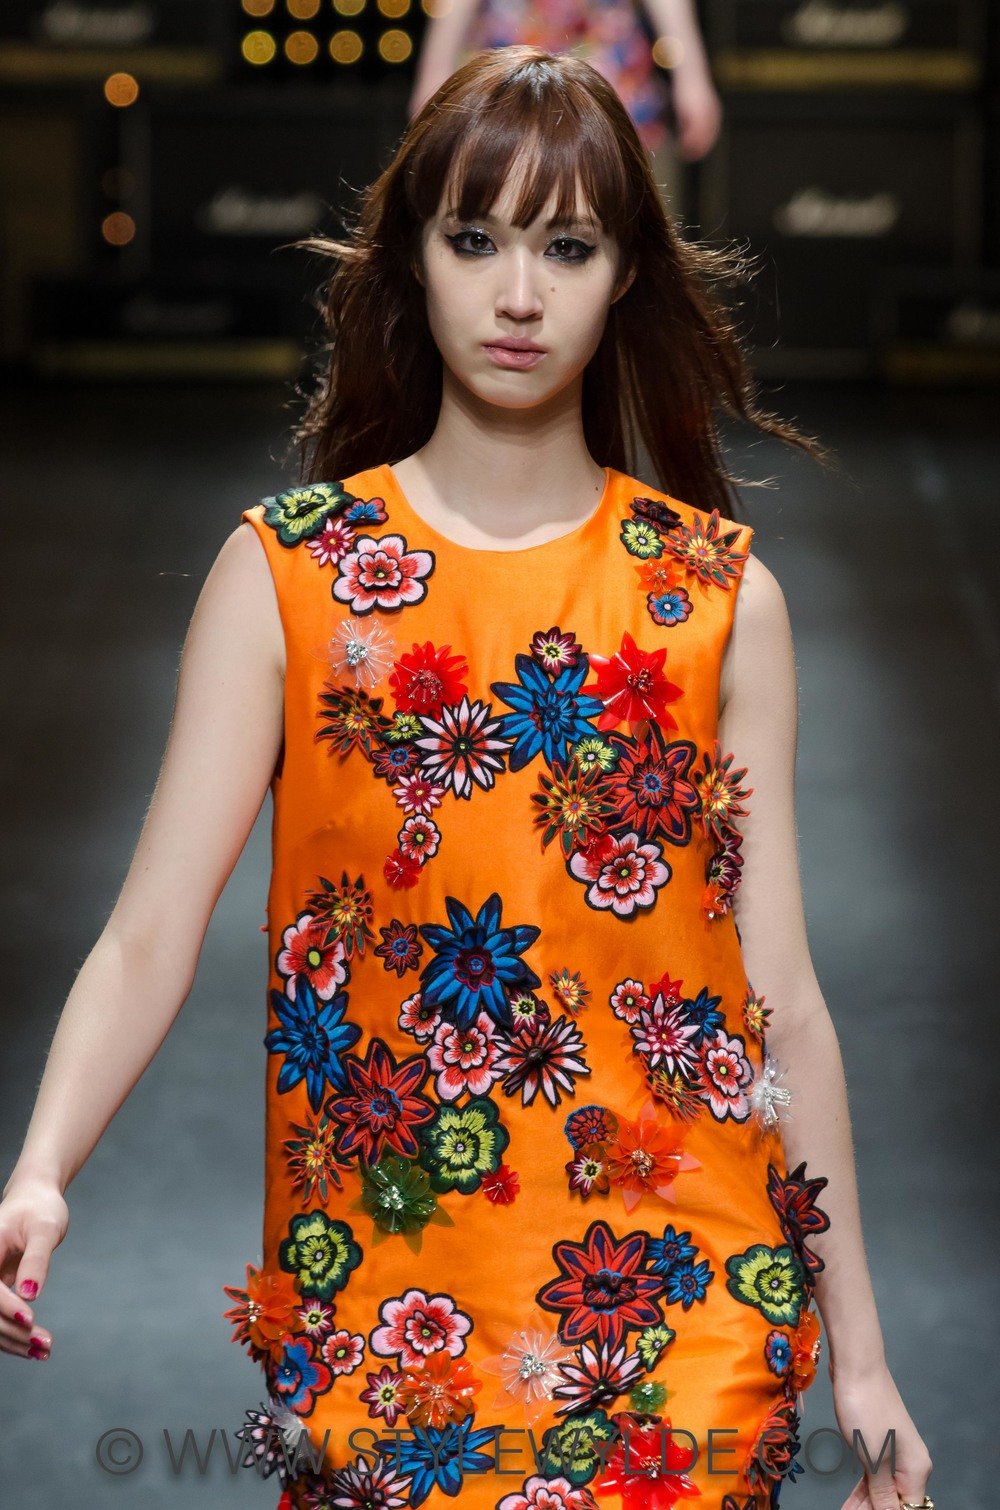 stylewylde_HouseofHolland_SS15 (57 of 68).jpg